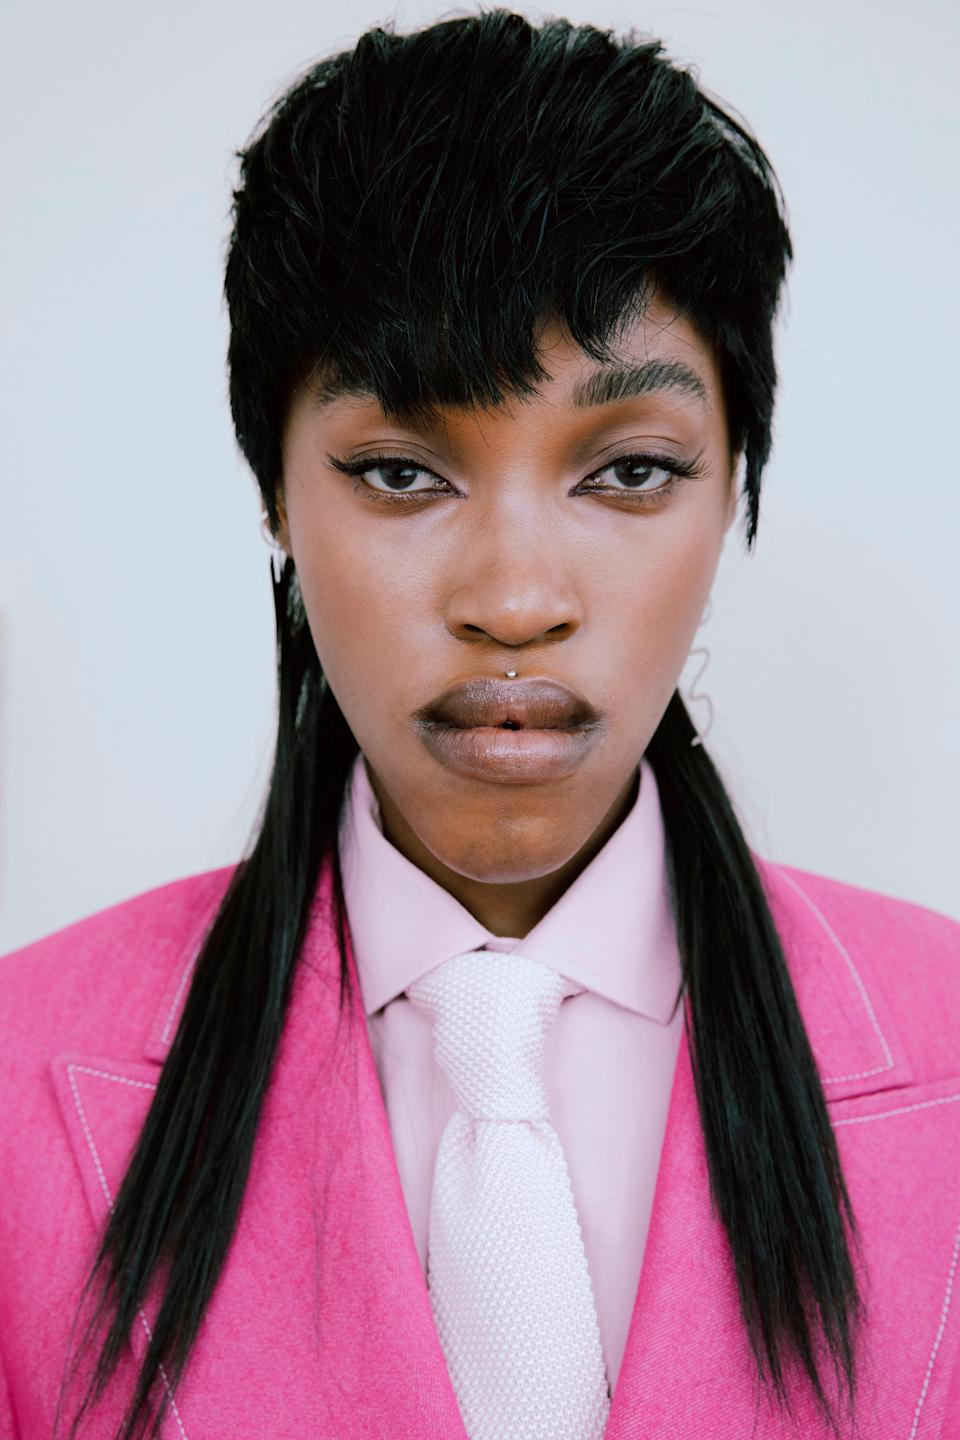 """Like many mullets, the style seen at <a href=""""https://www.allure.com/gallery/paris-fashion-week-fall-2021-hair-makeup-trends?mbid=synd_yahoo_rss"""" rel=""""nofollow noopener"""" target=""""_blank"""" data-ylk=""""slk:Thebe Magugu's fall 2021"""" class=""""link rapid-noclick-resp"""">Thebe Magugu's fall 2021</a> show has a ton of texture, but it is brought out through the actual cut of the hair, as opposed to a natural pattern. Here, the hair in the back flows straight down, instead of bending or curling. """"For a more full face, the modern mullet is the way to go,"""" notes hairstylist <a href=""""https://www.instagram.com/sallyhershberger/"""" rel=""""nofollow noopener"""" target=""""_blank"""" data-ylk=""""slk:Sally Hershberger"""" class=""""link rapid-noclick-resp"""">Sally Hershberger</a>. """"The hair framed around the face will perfectly complement this face shape."""""""